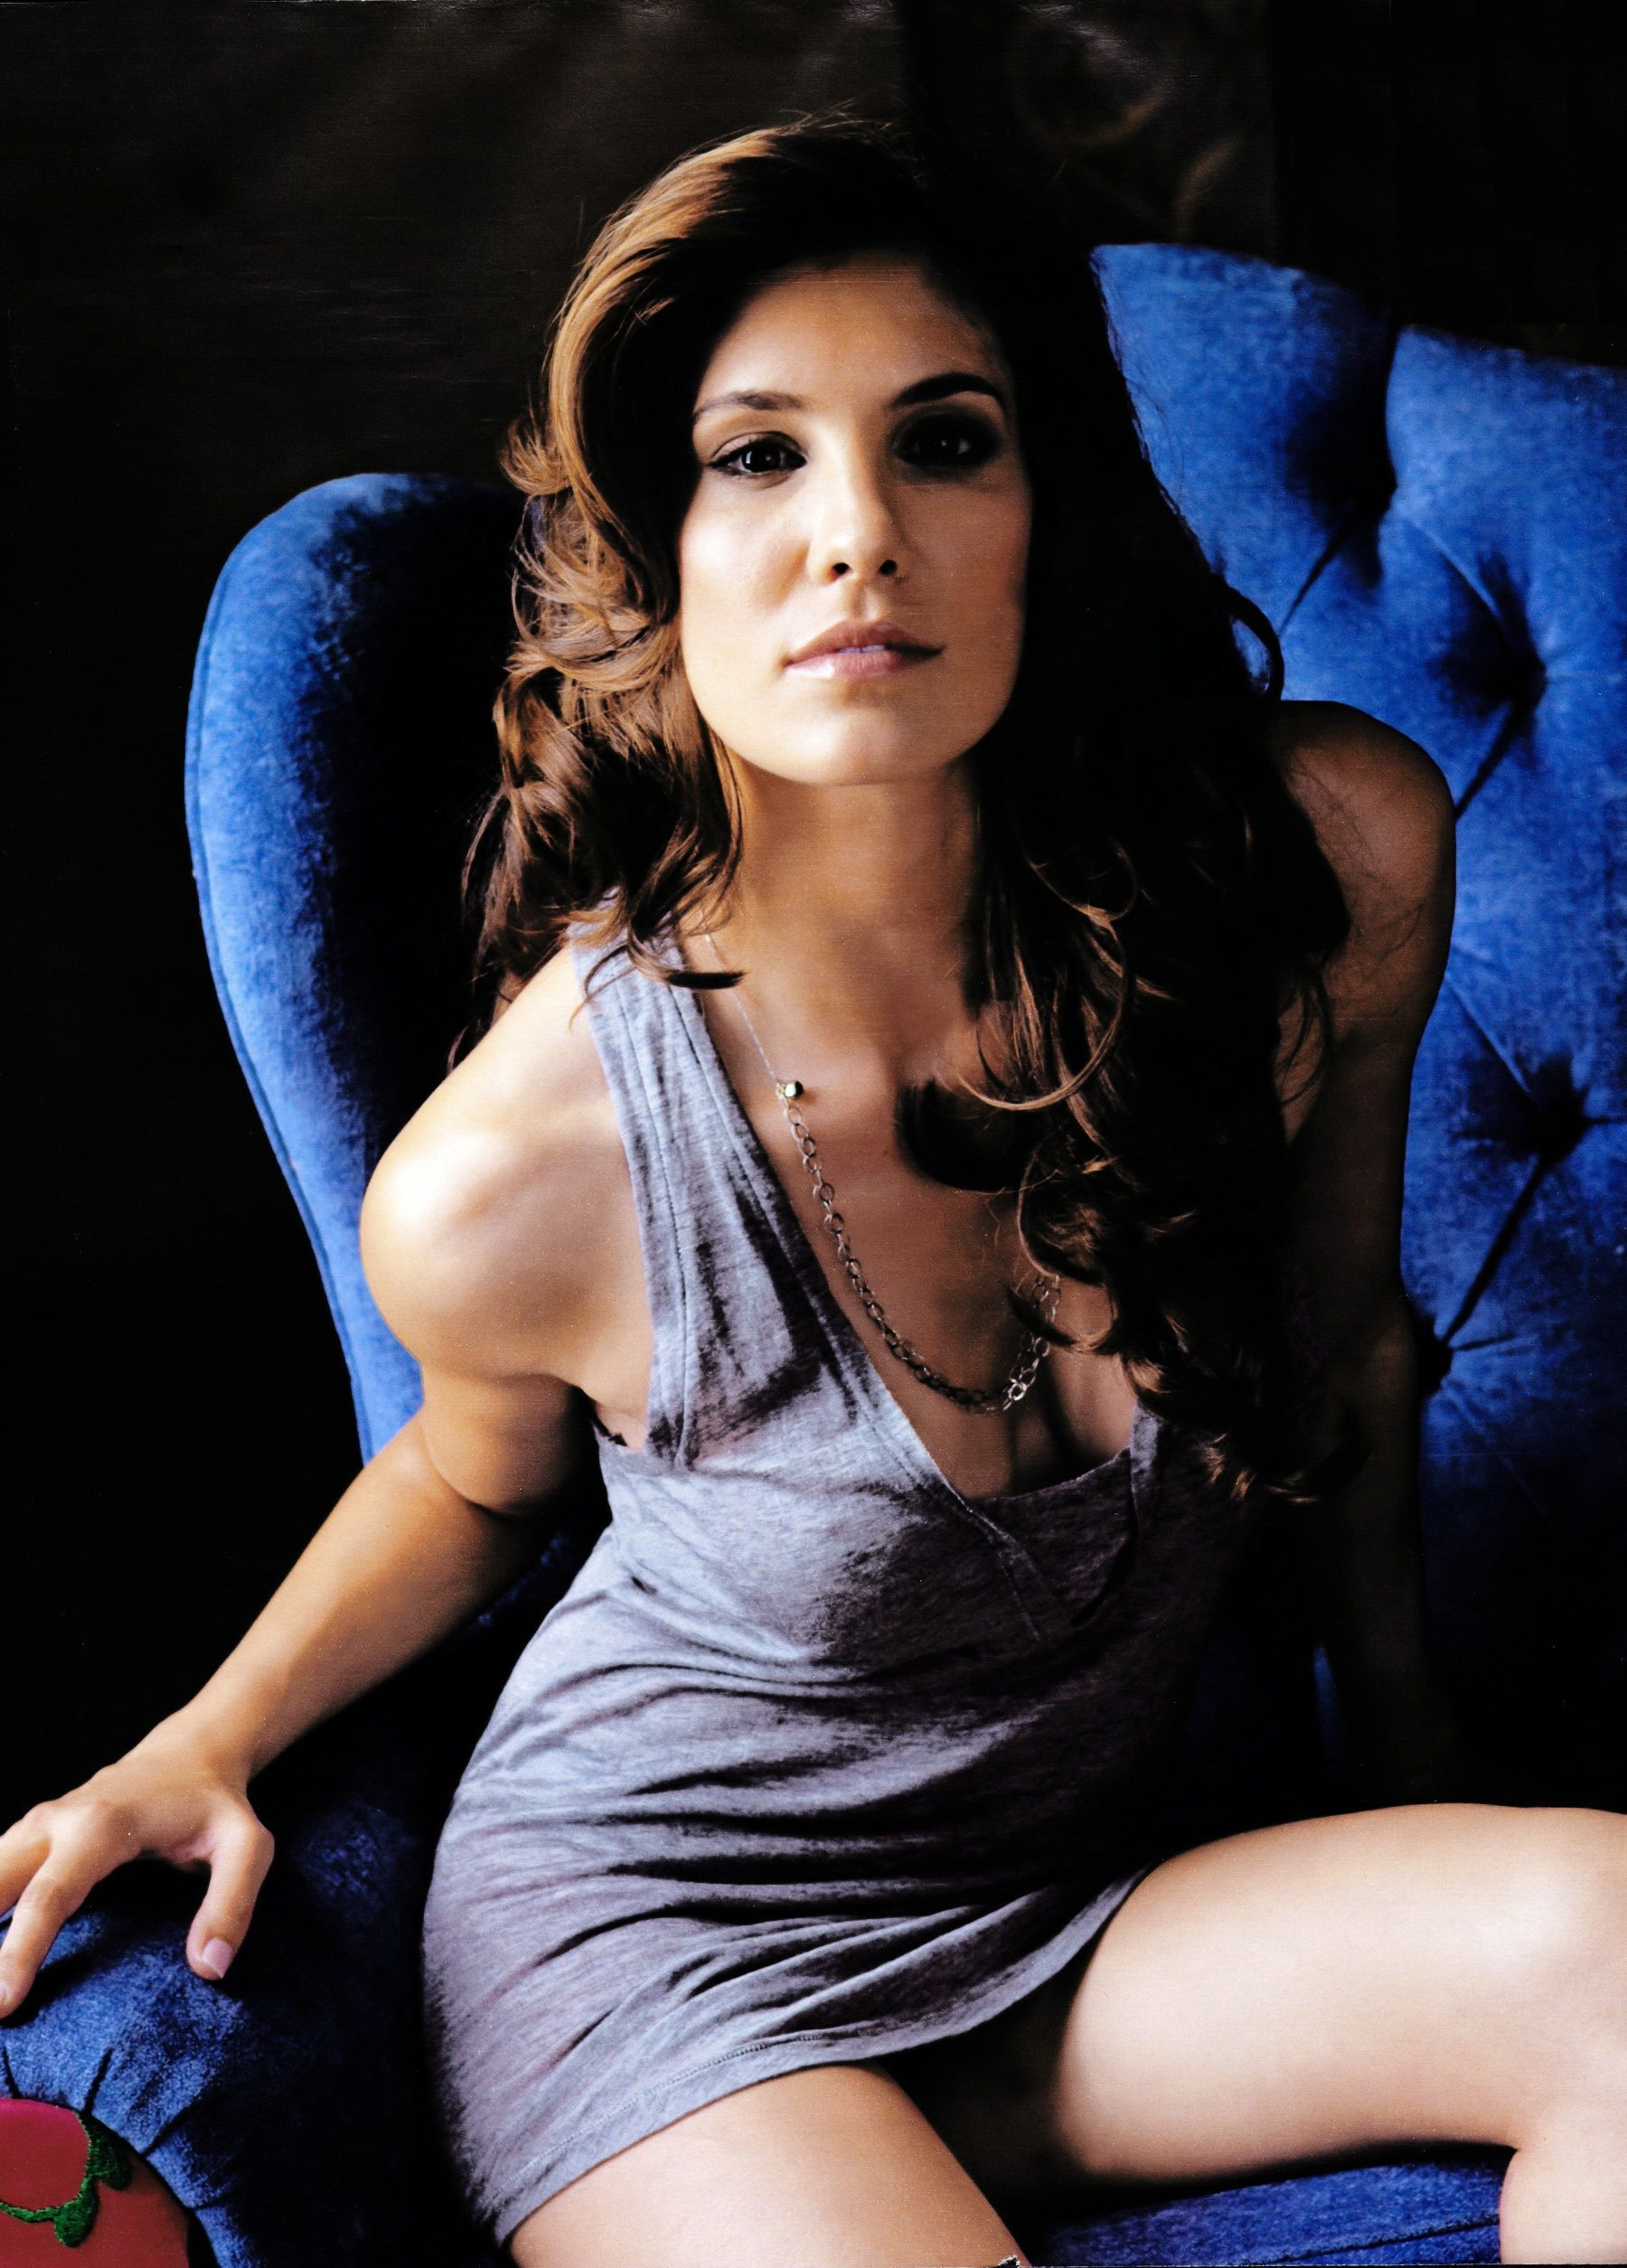 70+ Hot Pictures of Daniela Ruah From NCIS Los Angeles